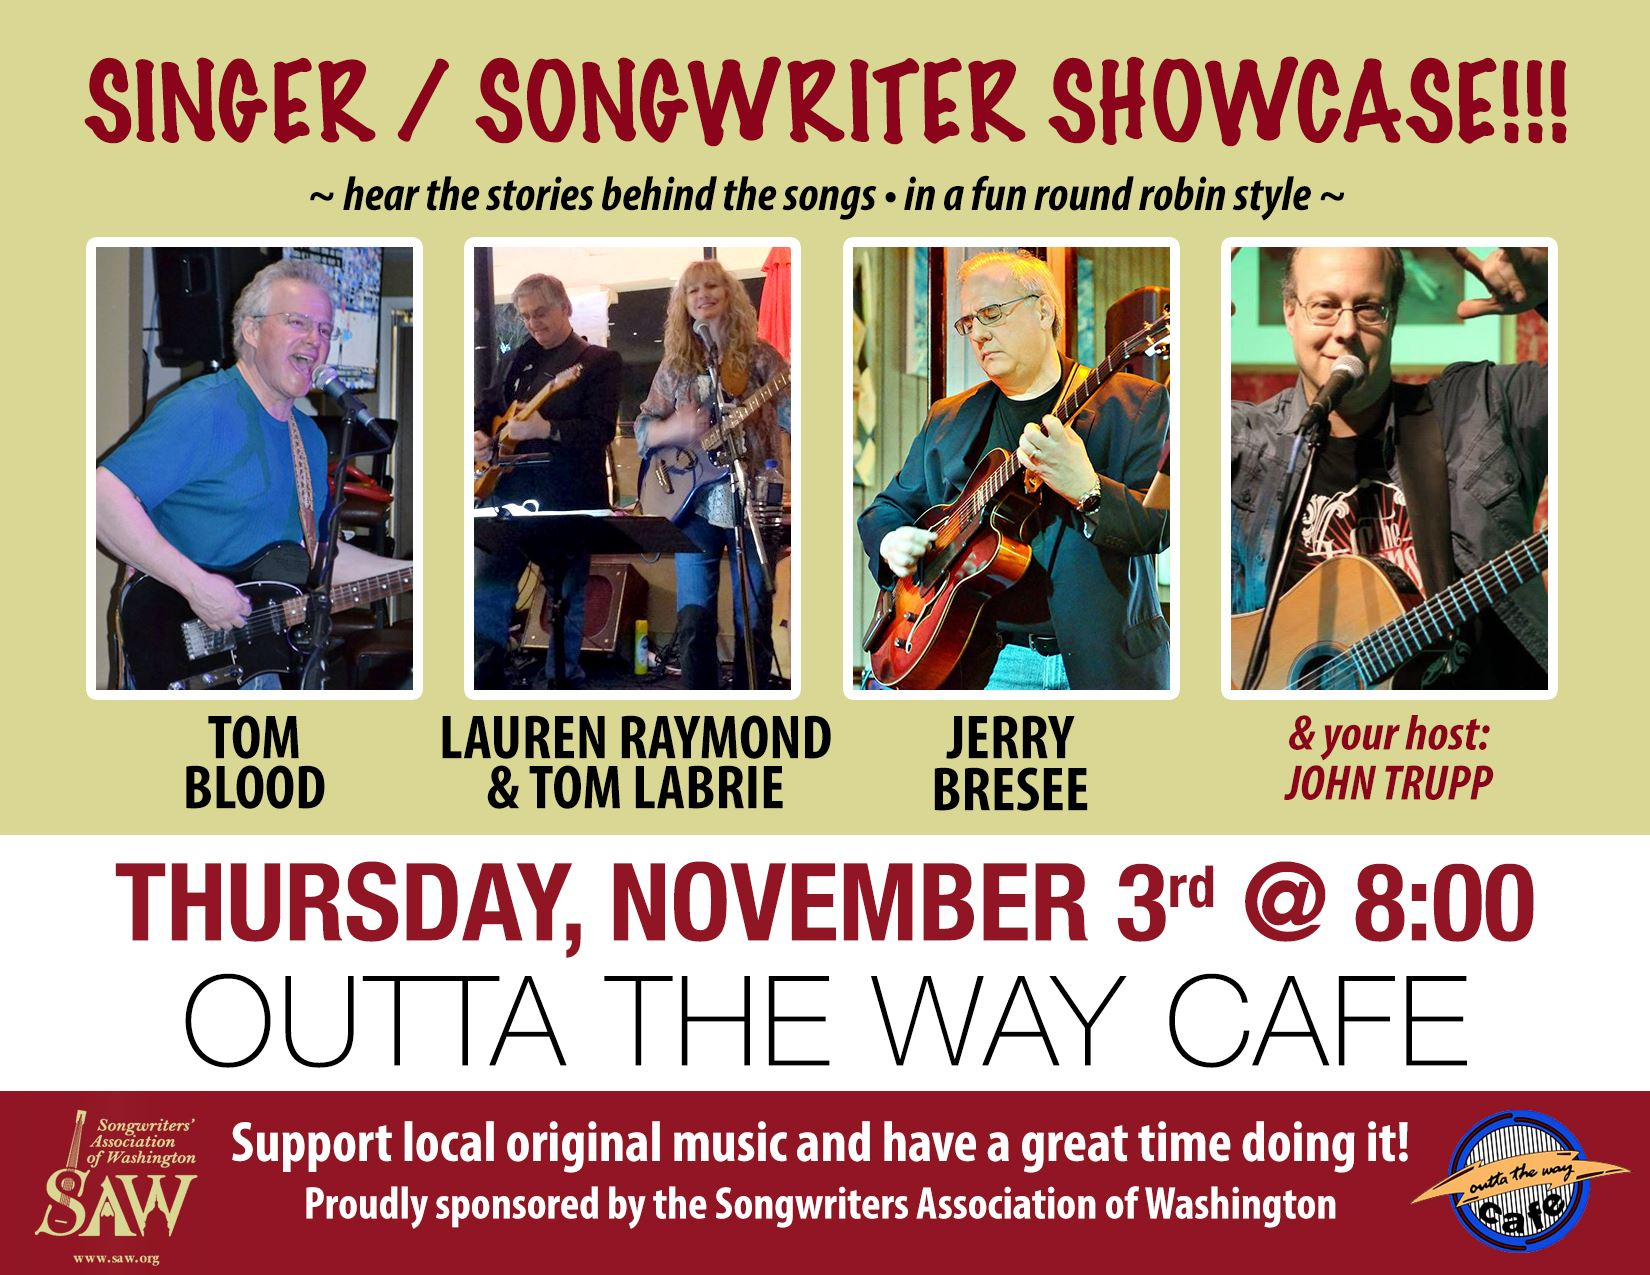 Songwriter Associations for Virginia, Washington & West Virginia